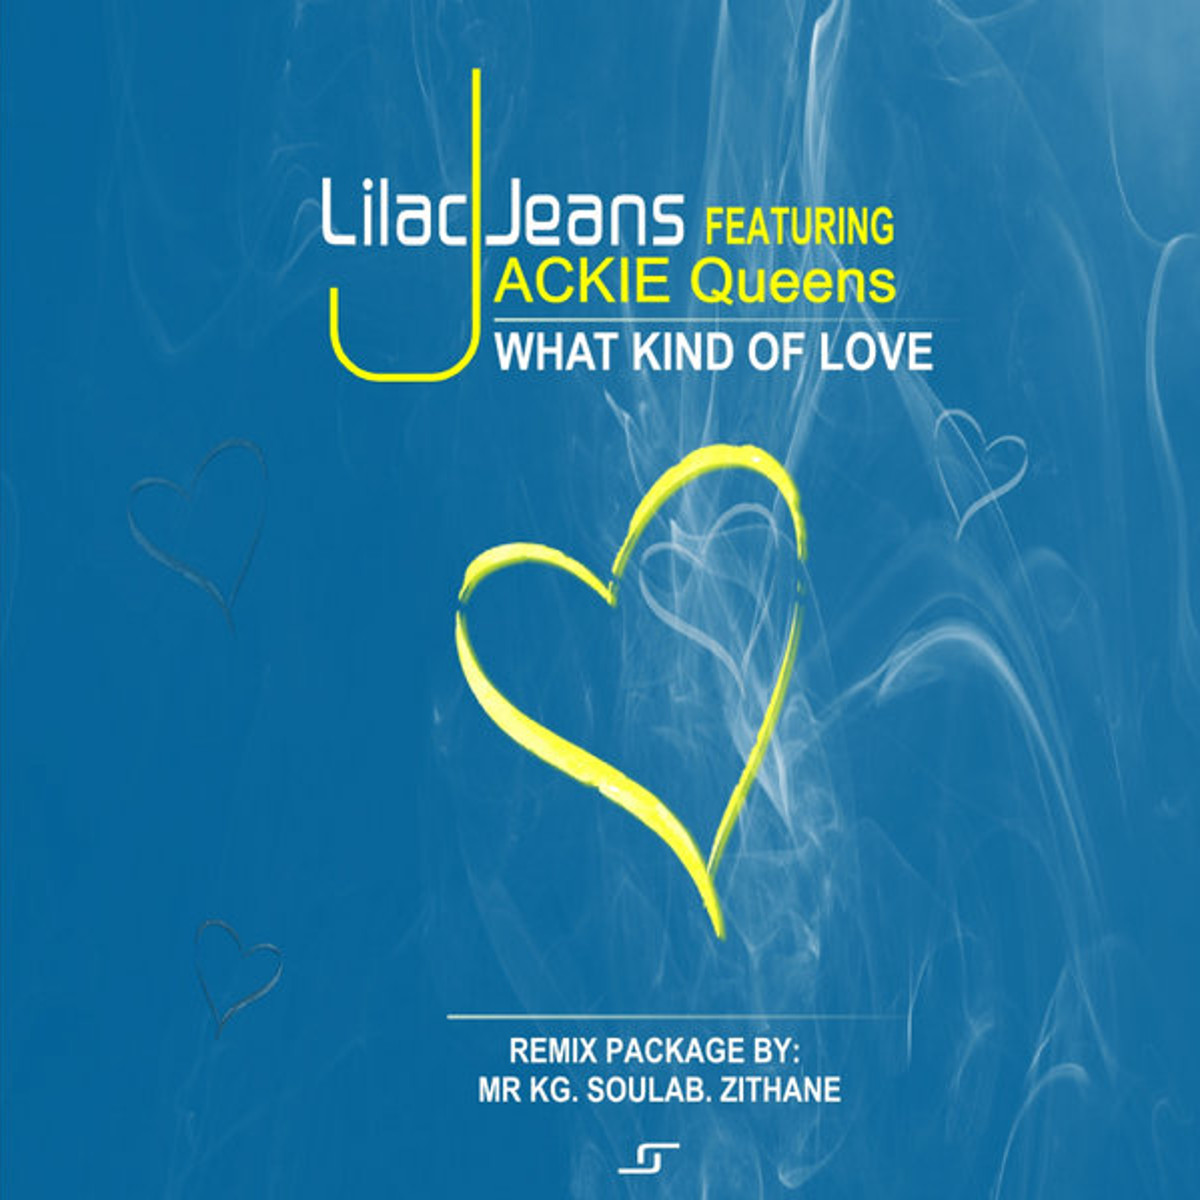 Lilac Jeans Jackie Queens What Kind Of Love Remix - Lilac Jeans Ft. Jackie Queens – What Kind Of Love (Remix Package)